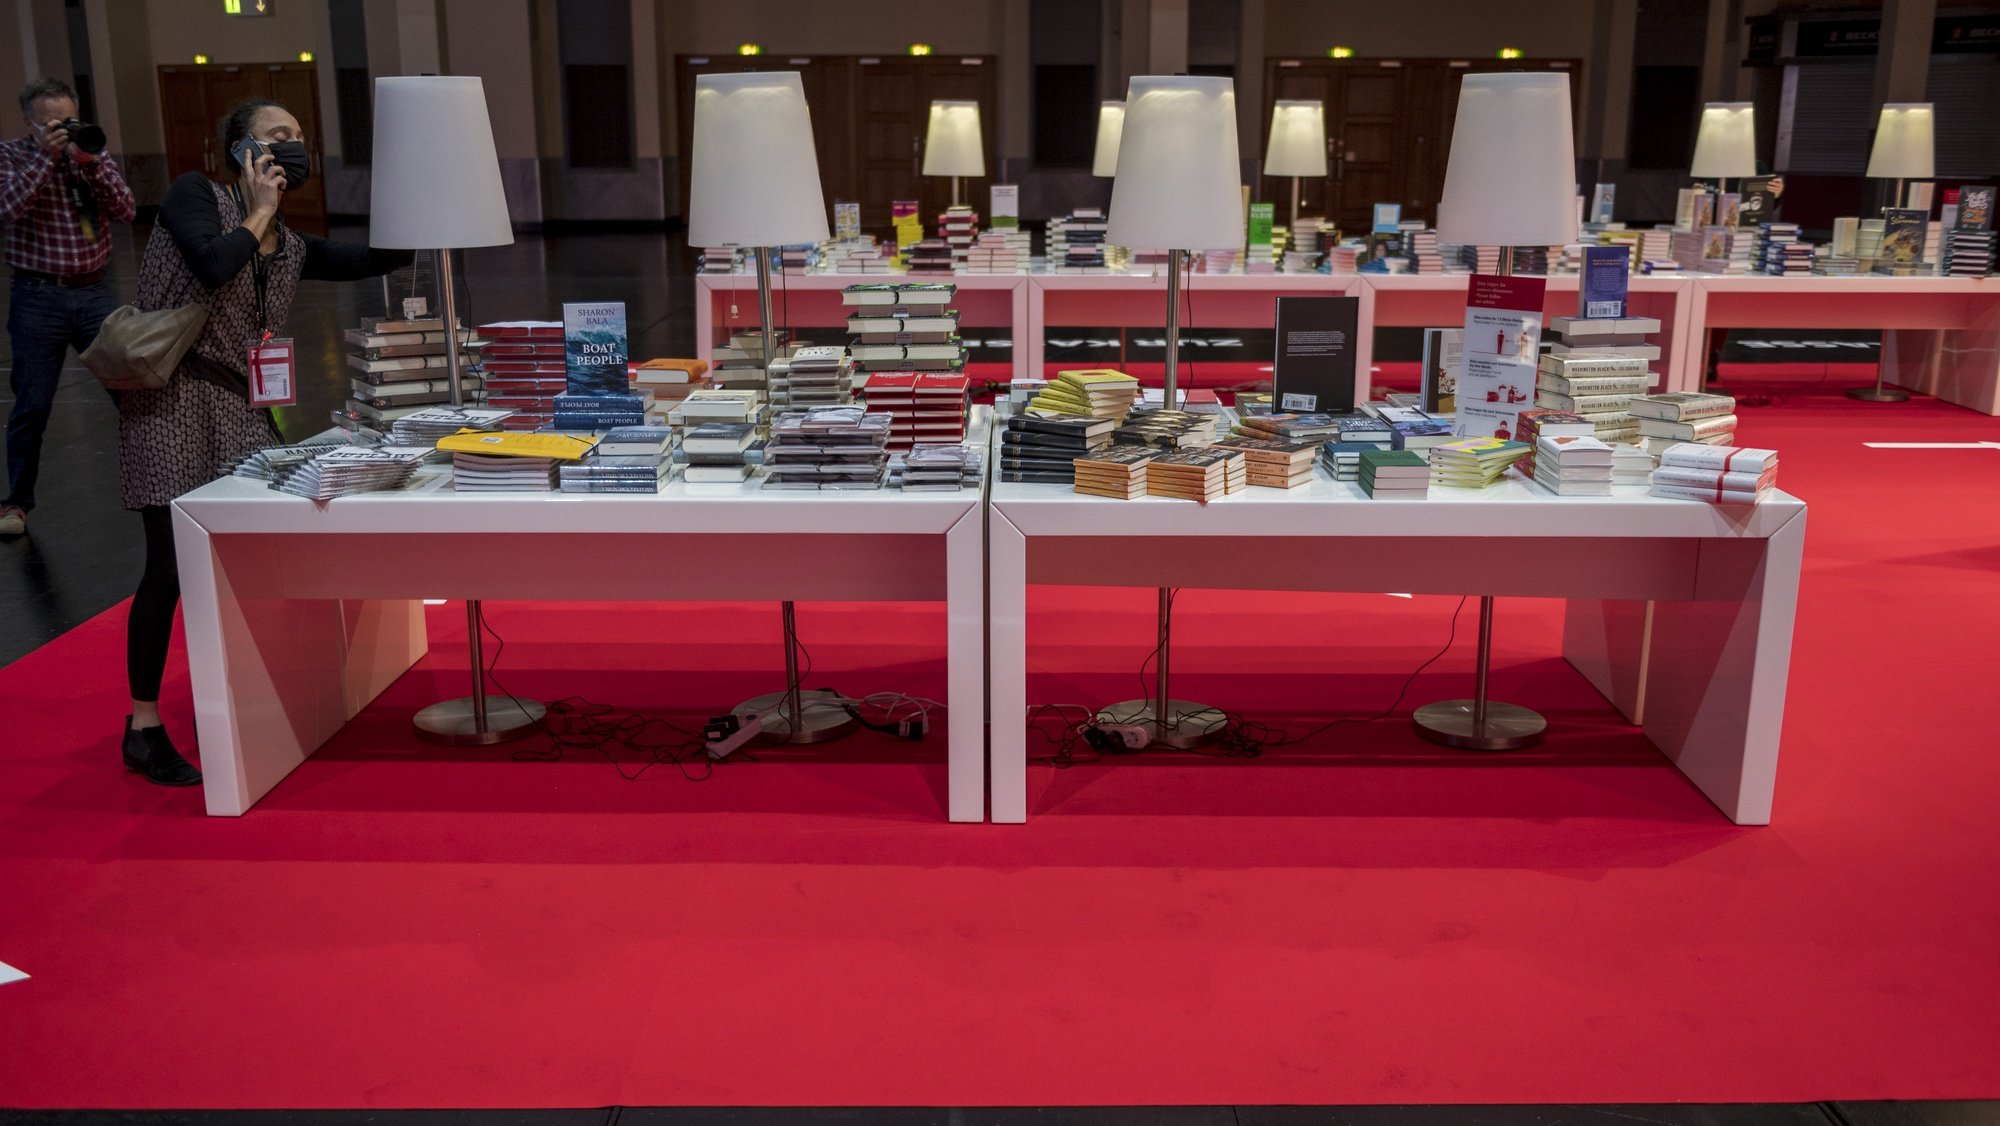 epa08740309 A general view of a table with books prior to the opening conference of the 2020 Frankfurt Book Fair during the coronavirus pandemic in the 'Festhalle' in Frankfurt am Main, 13 October 2020. The Frankfurt Book Fair is the world's largest trade fair for books but is taking place this year at a much smaller scale and with many events either online or scattered throughout the city of Frankfurt due to the coronavirus pandemic. This year's Special Edition of the Book Fair takes place from 14 October to 18 October 2020.  EPA/THOMAS LOHNES / POOL